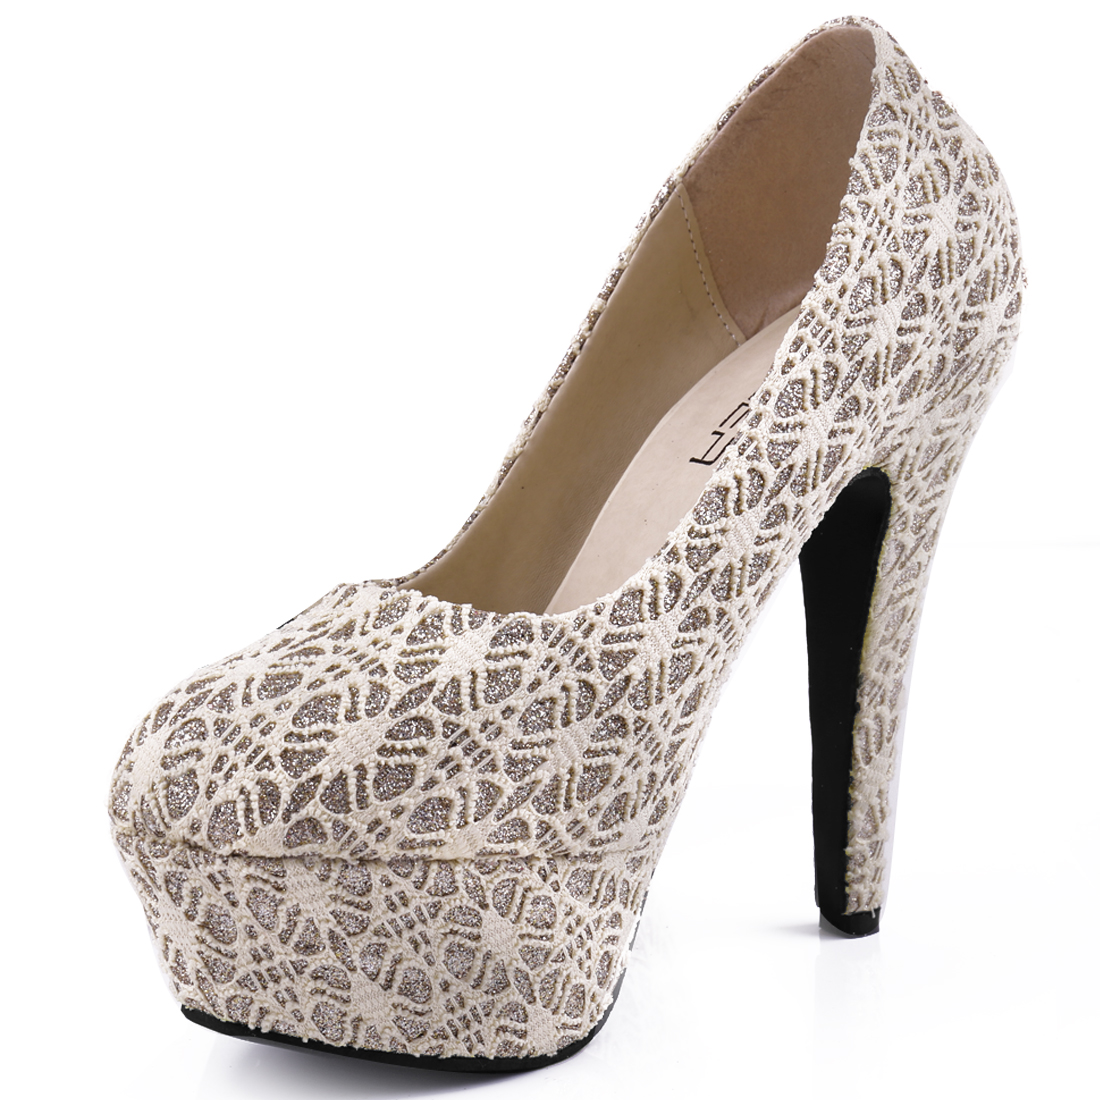 Women Fashion Beige Color Crochet Flower Vamp Design Platform Pumps US 7.5